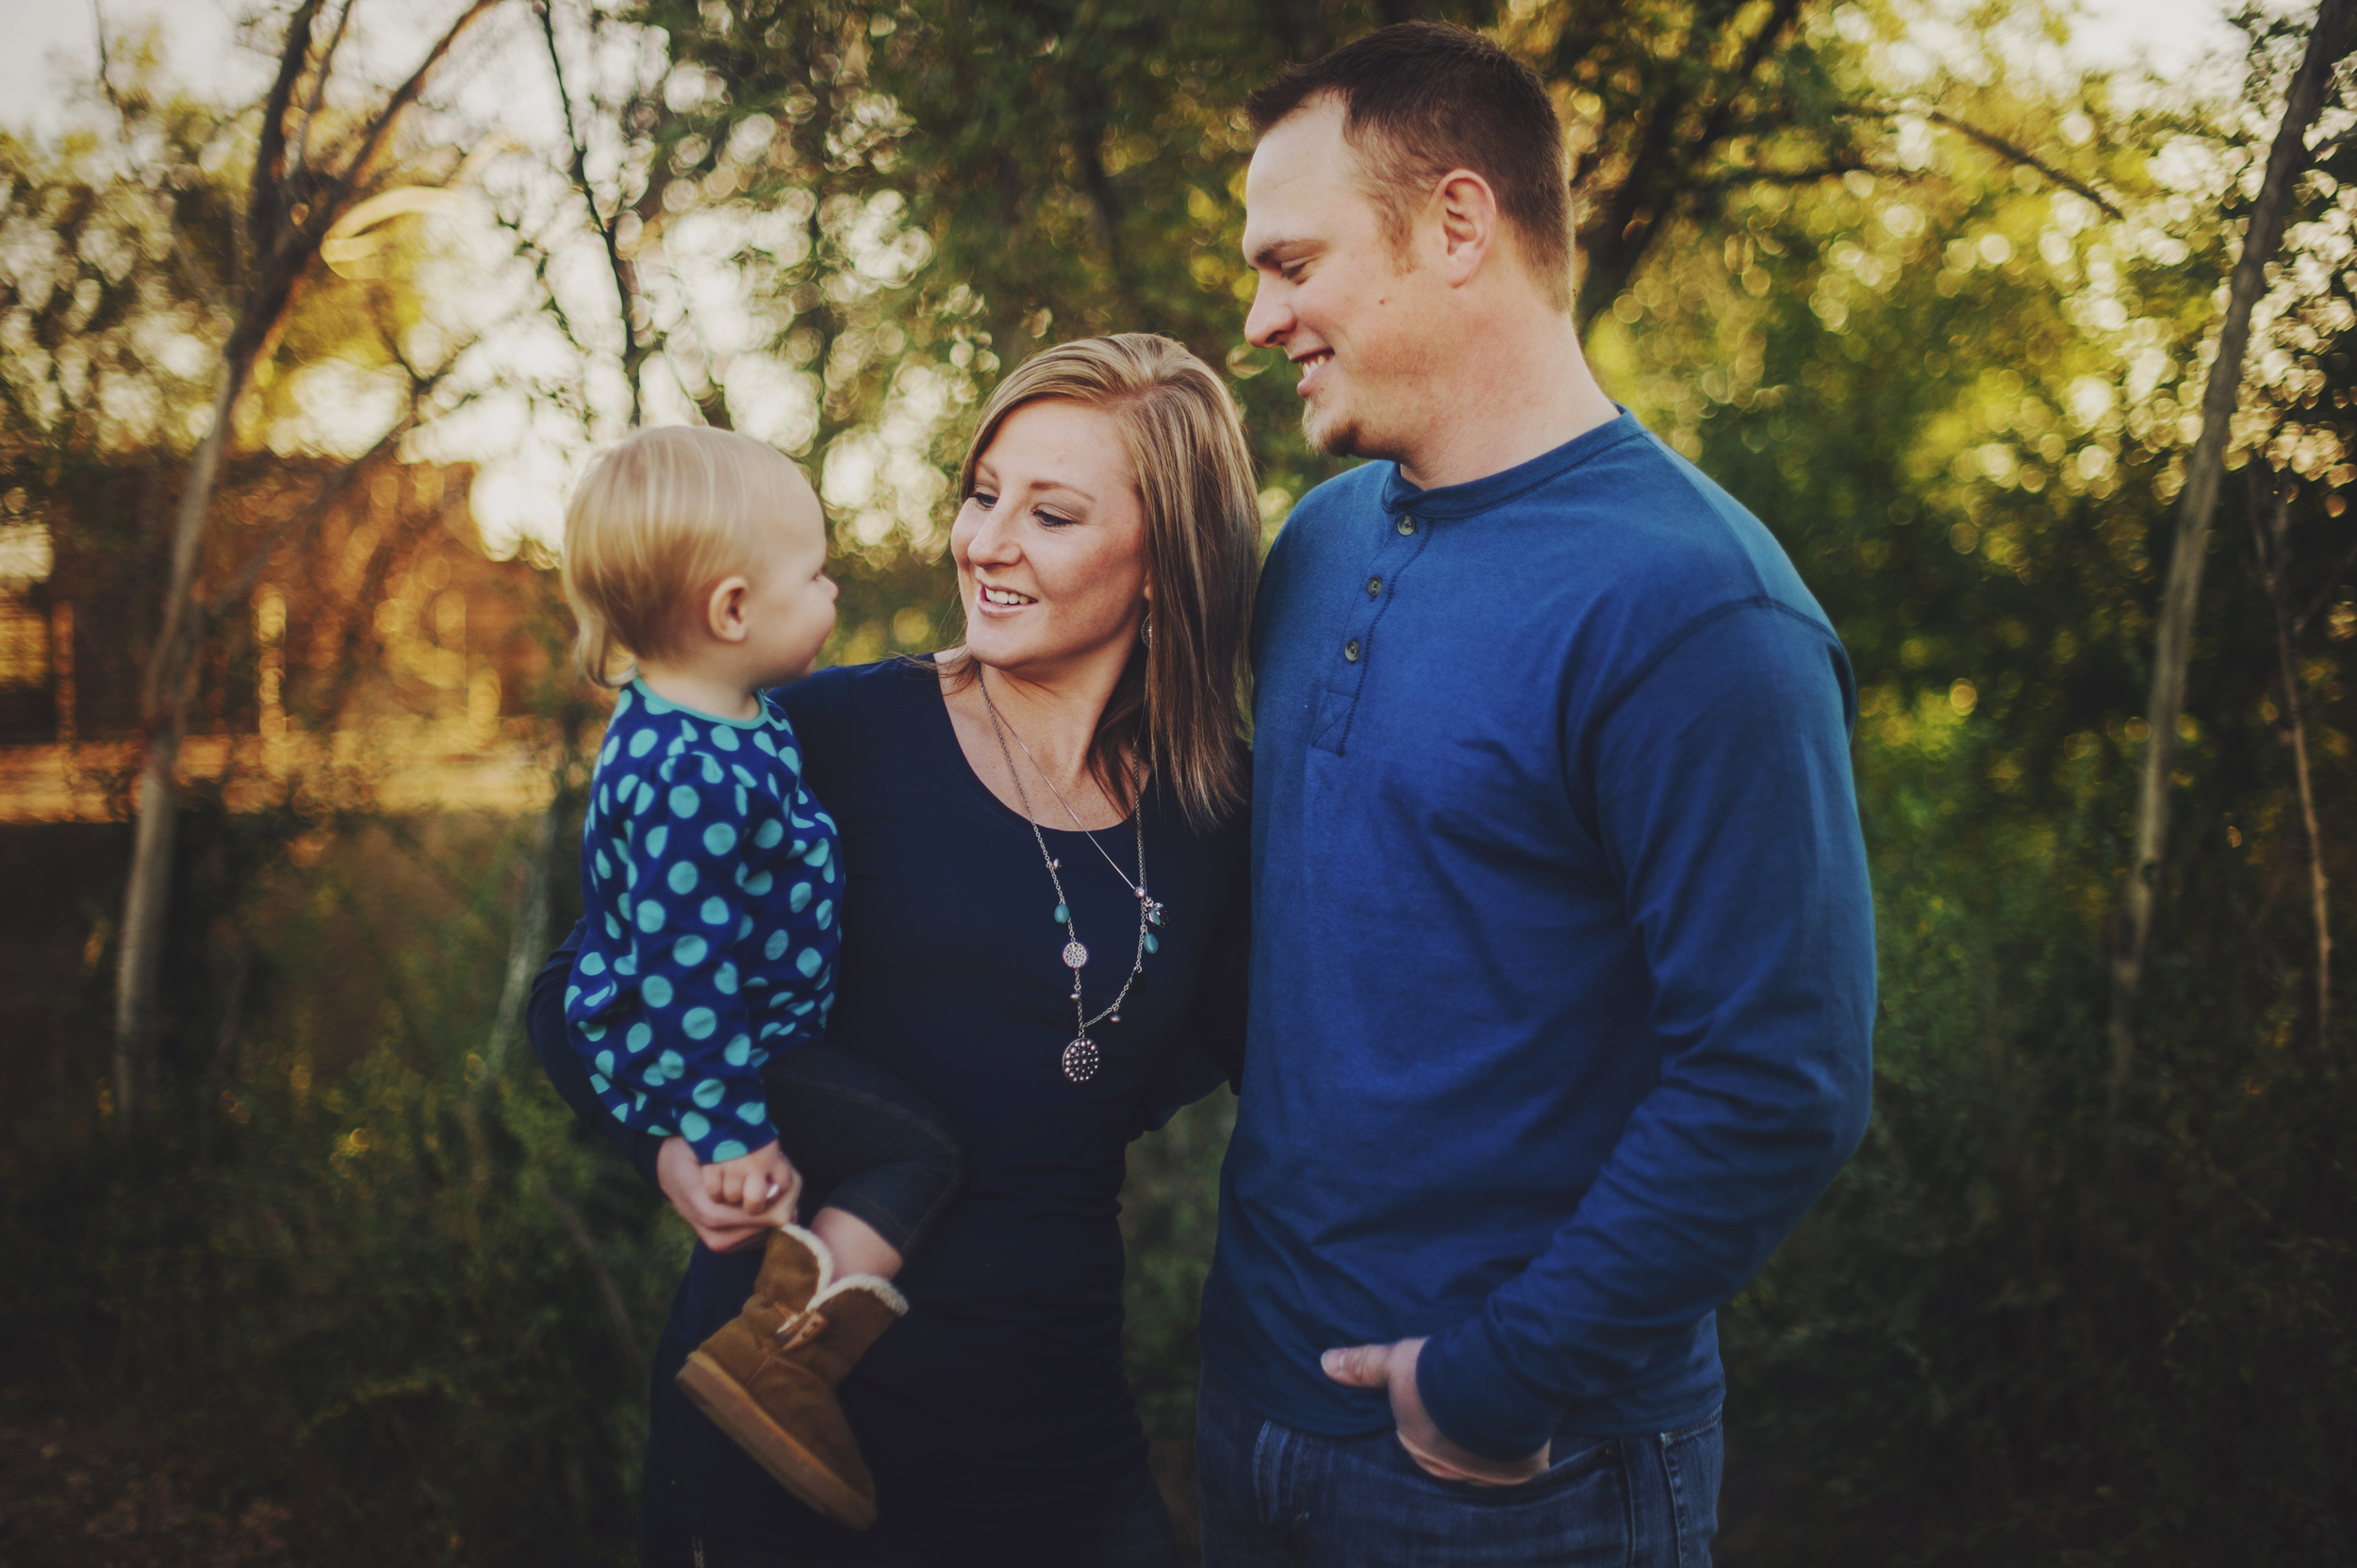 Jordan and Angie Family Photo Debi Rae Photography Wyoming Photographer- 21.jpg